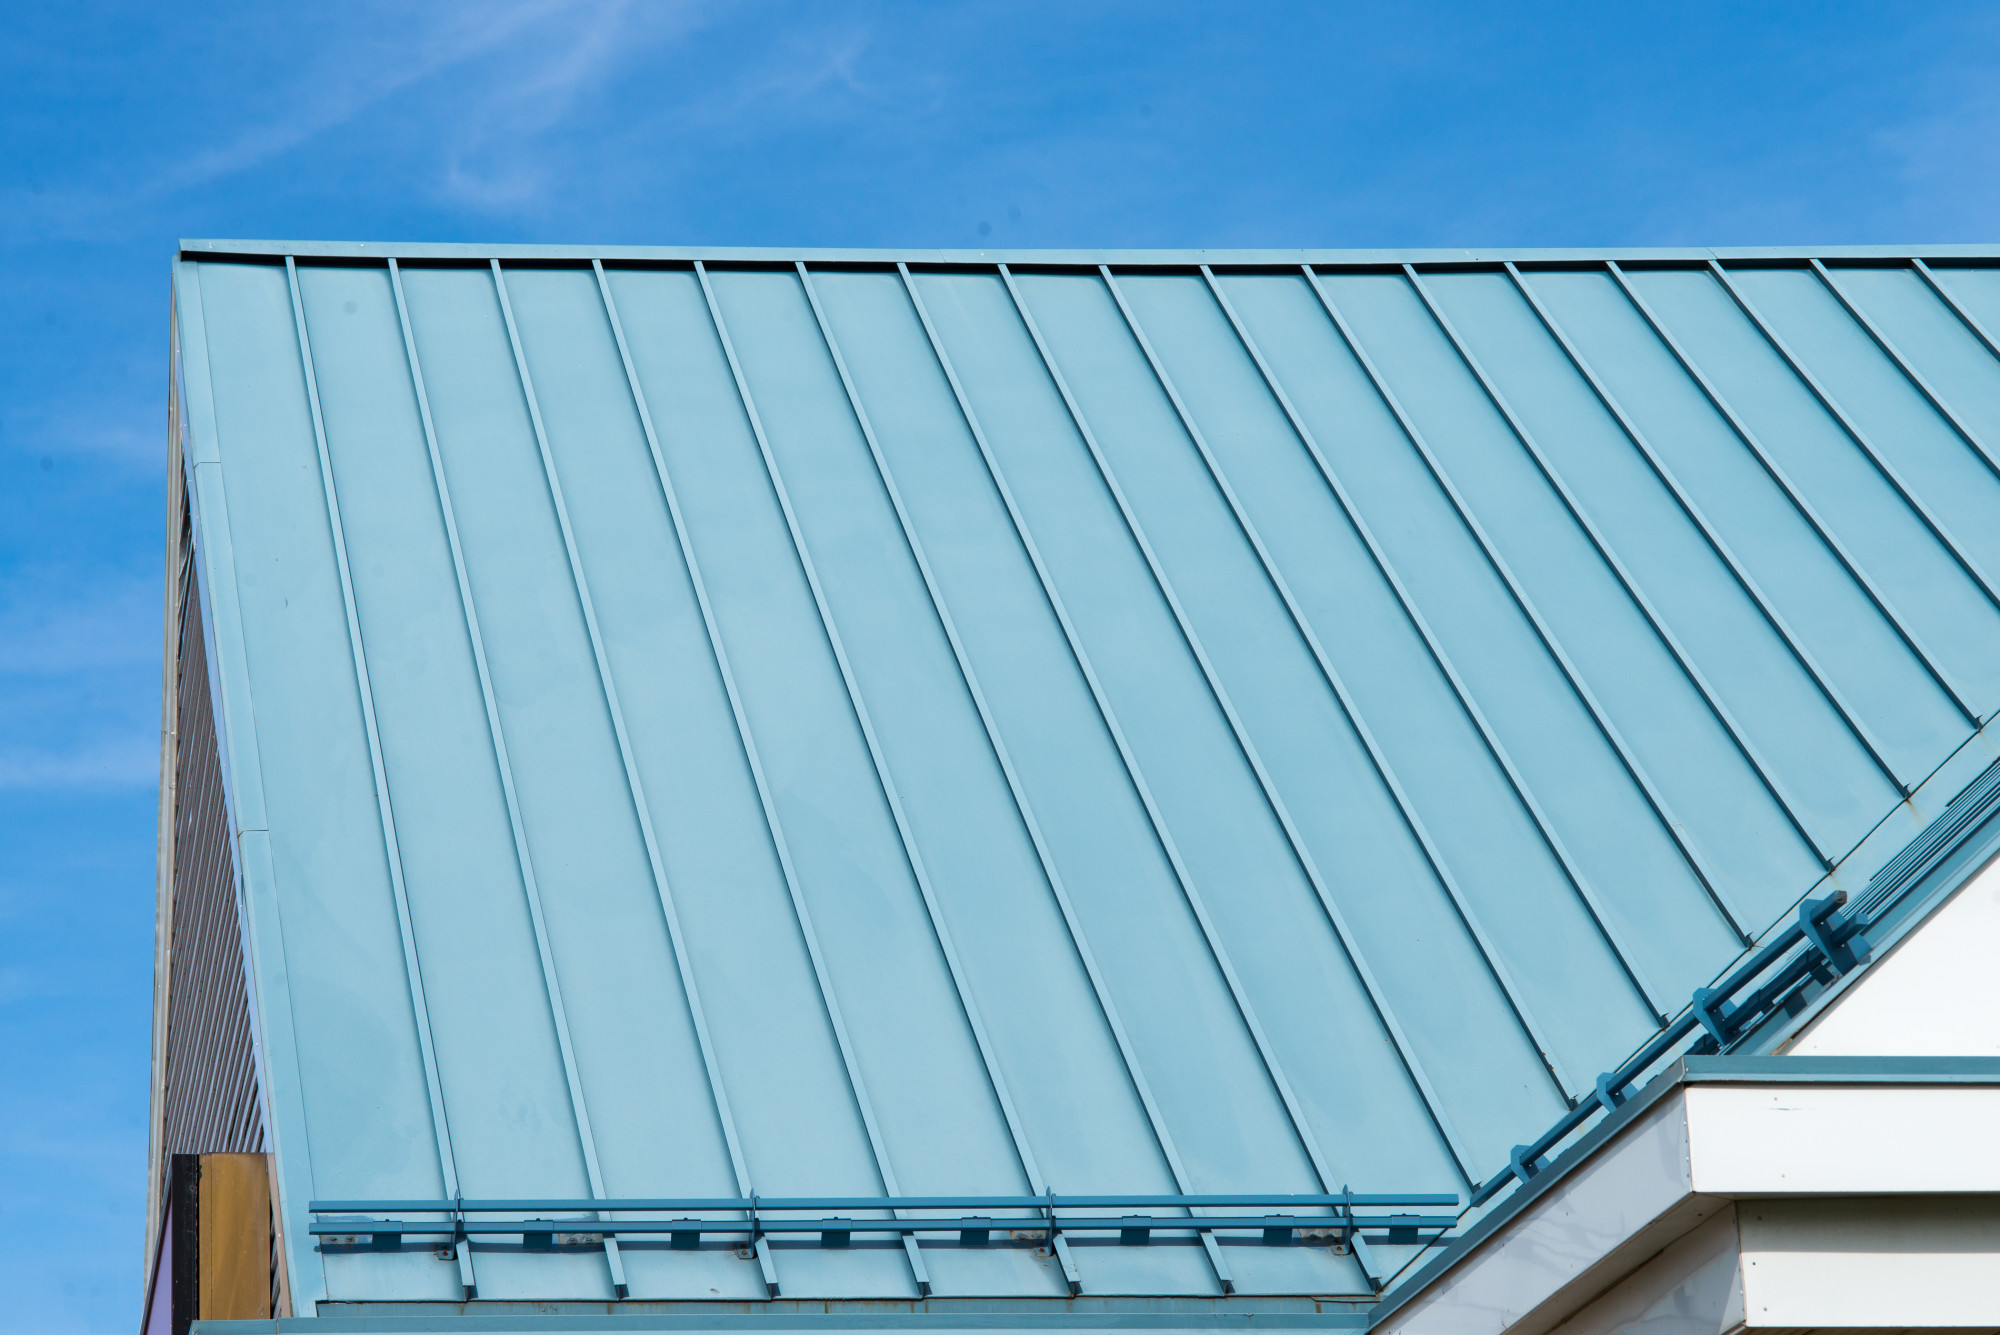 13 Things to Know Before Choosing a Metal Roof